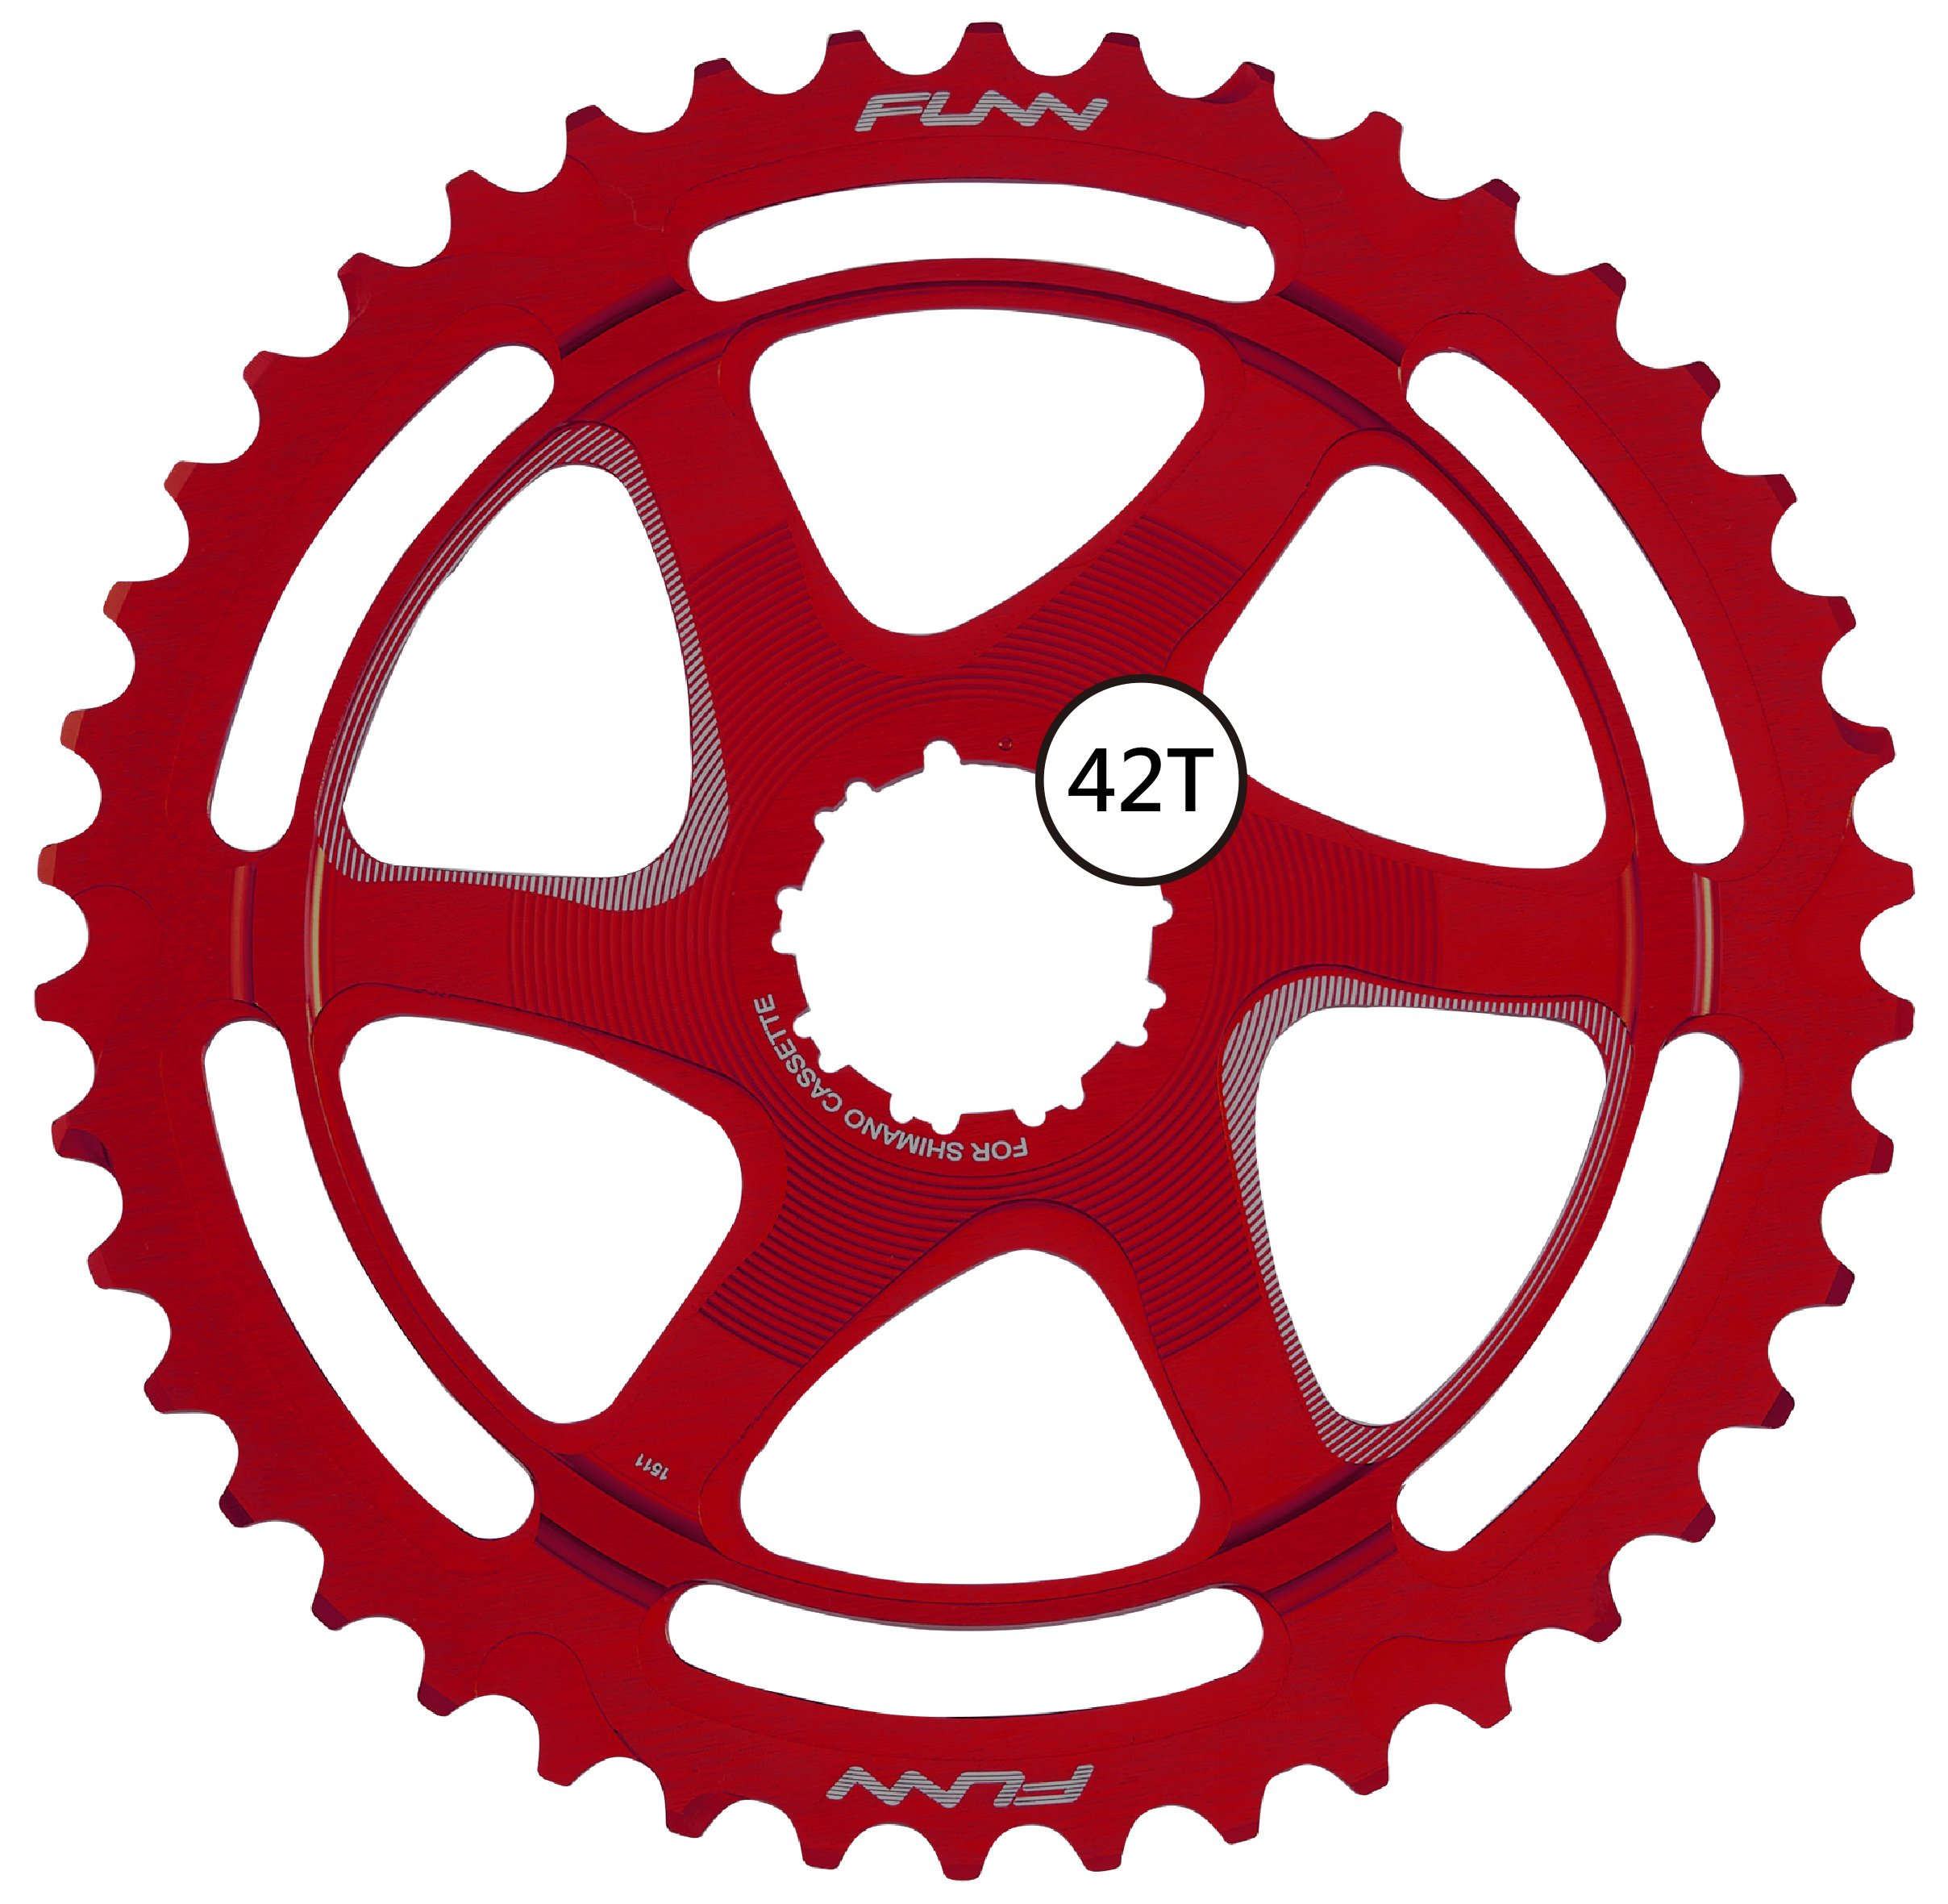 Funn Clinch Extension COG 42T (for Shimano 10 SPD) (red)